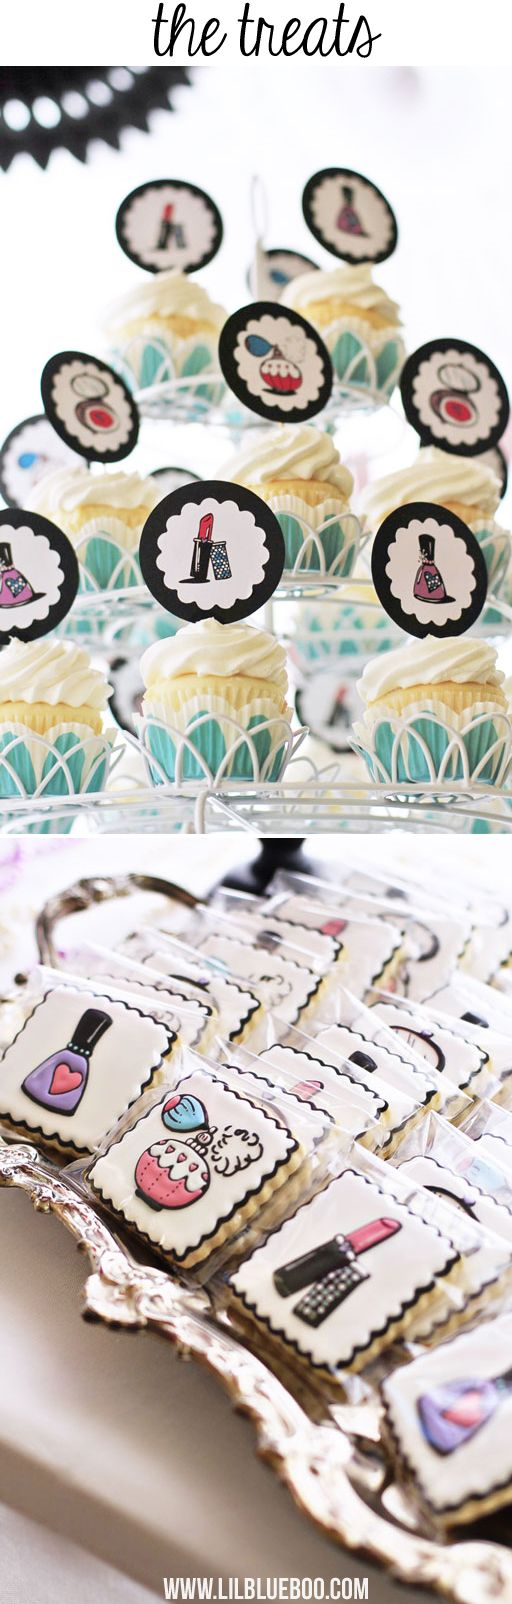 Beauty Salon Party Printables and Supplies via lilblueboo.com : The Treats